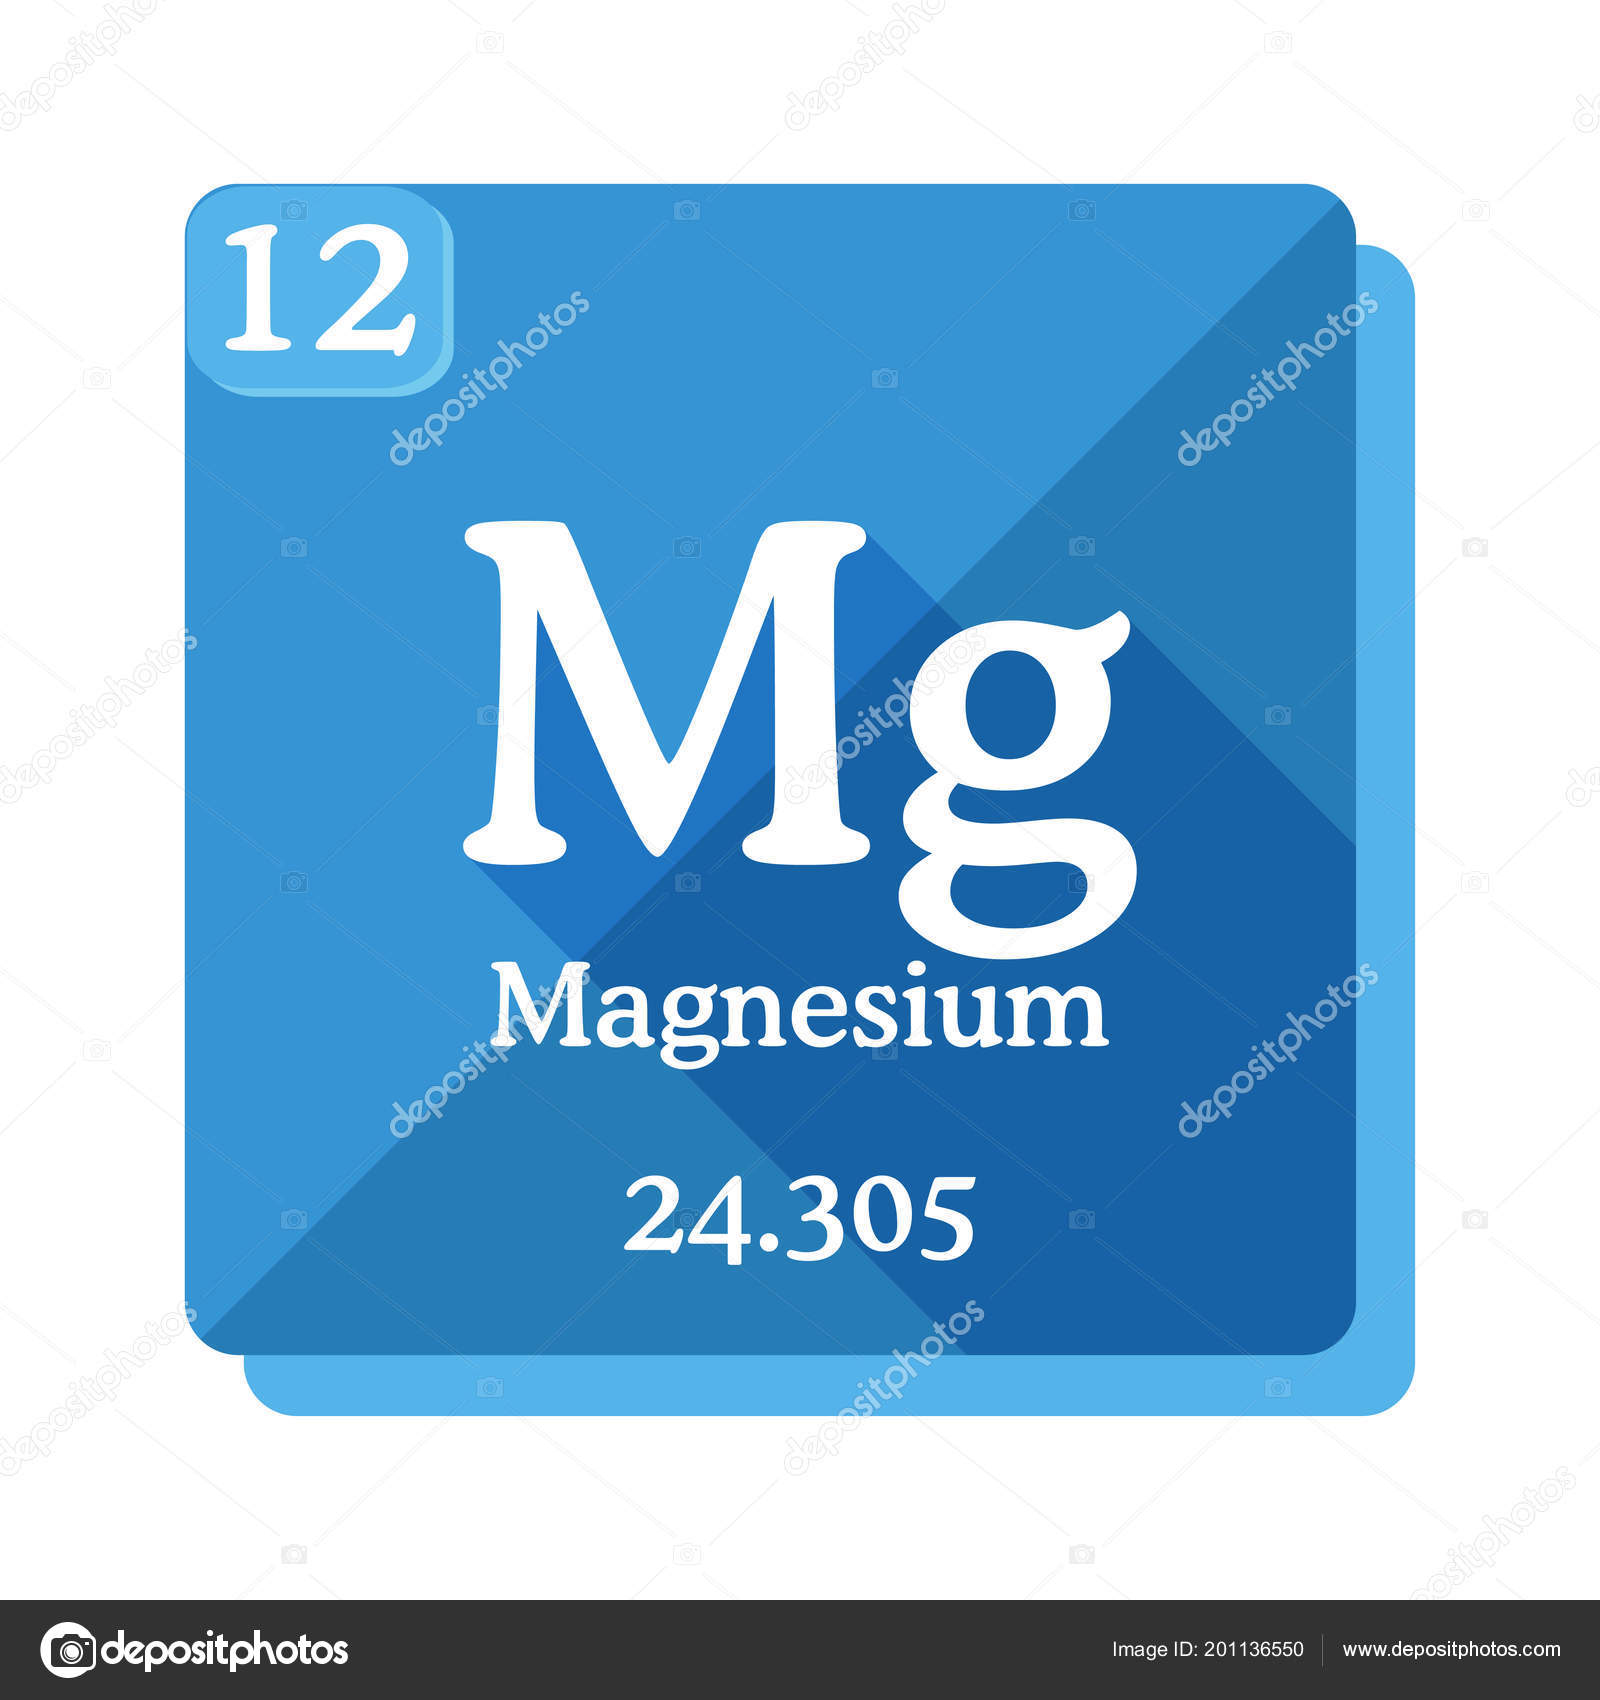 Magnesium Chemical Element Periodic Table Elements Magnesium Icon Blue  Background U2014 Stock Vector